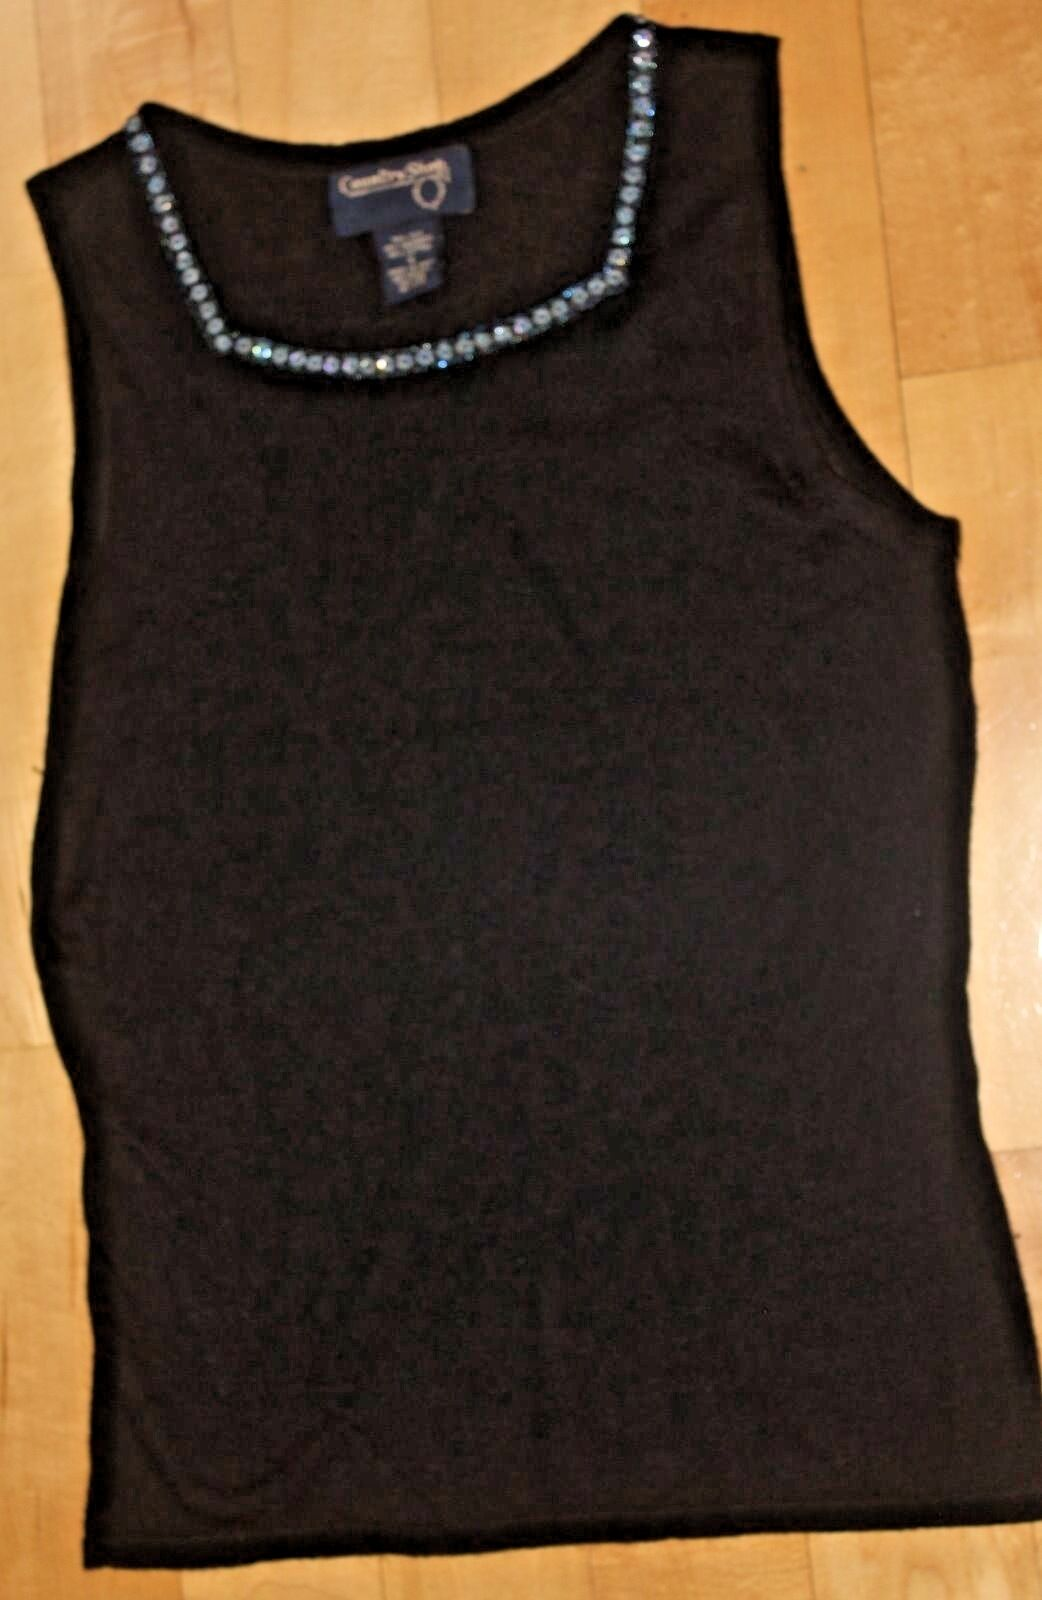 COUNTRY SHOP SHOP SHOP WOMEN'S SLEEVELESS SILK AND CASHMERE SWEATER SIZE S 7b7626